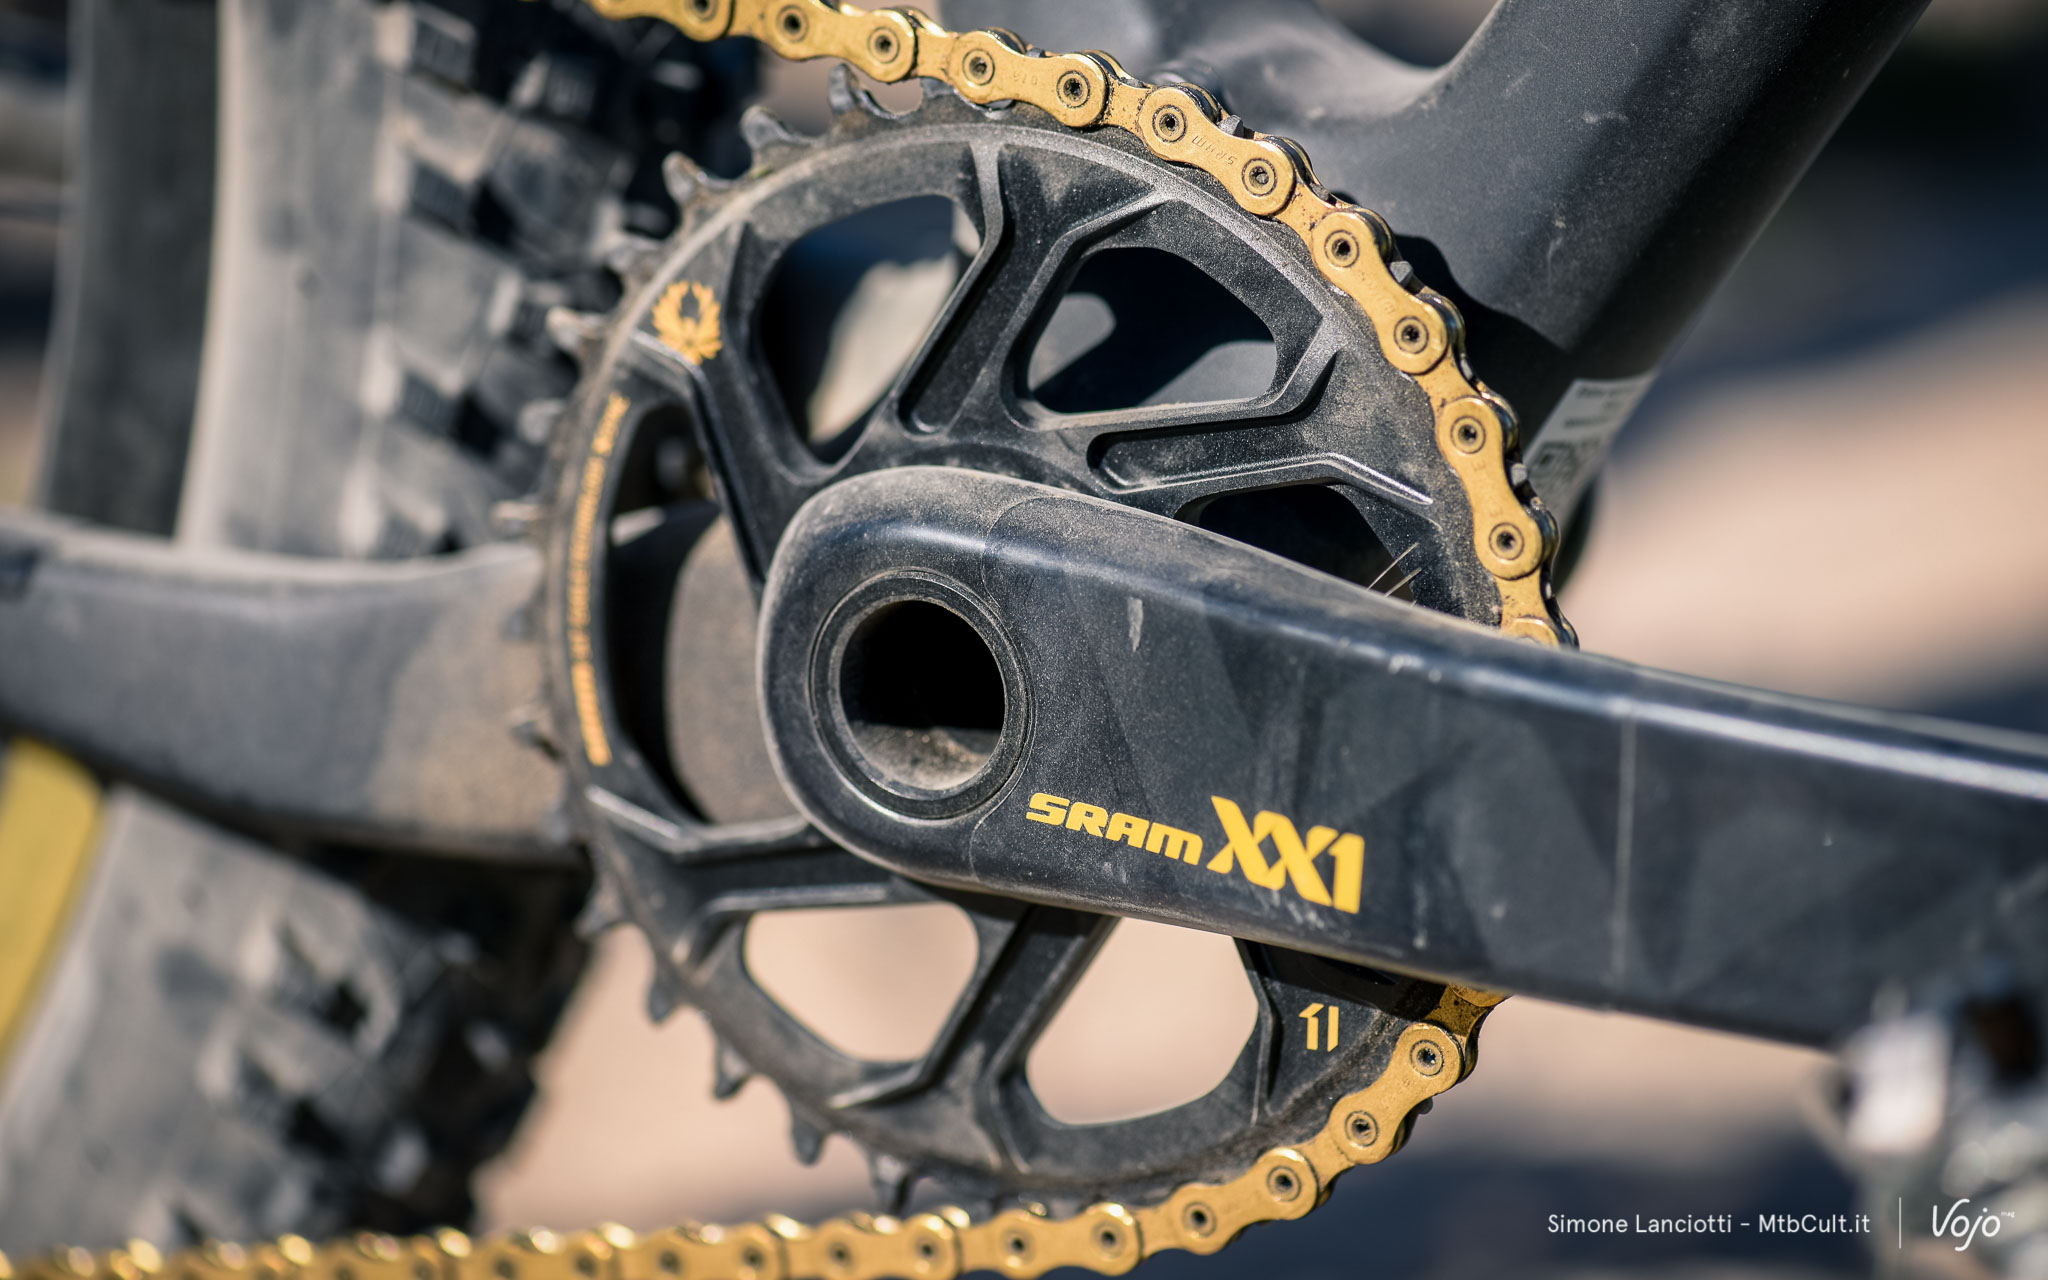 Sram_Eagle_XX1_Test_Copyright_OBeart_Vojomag-22